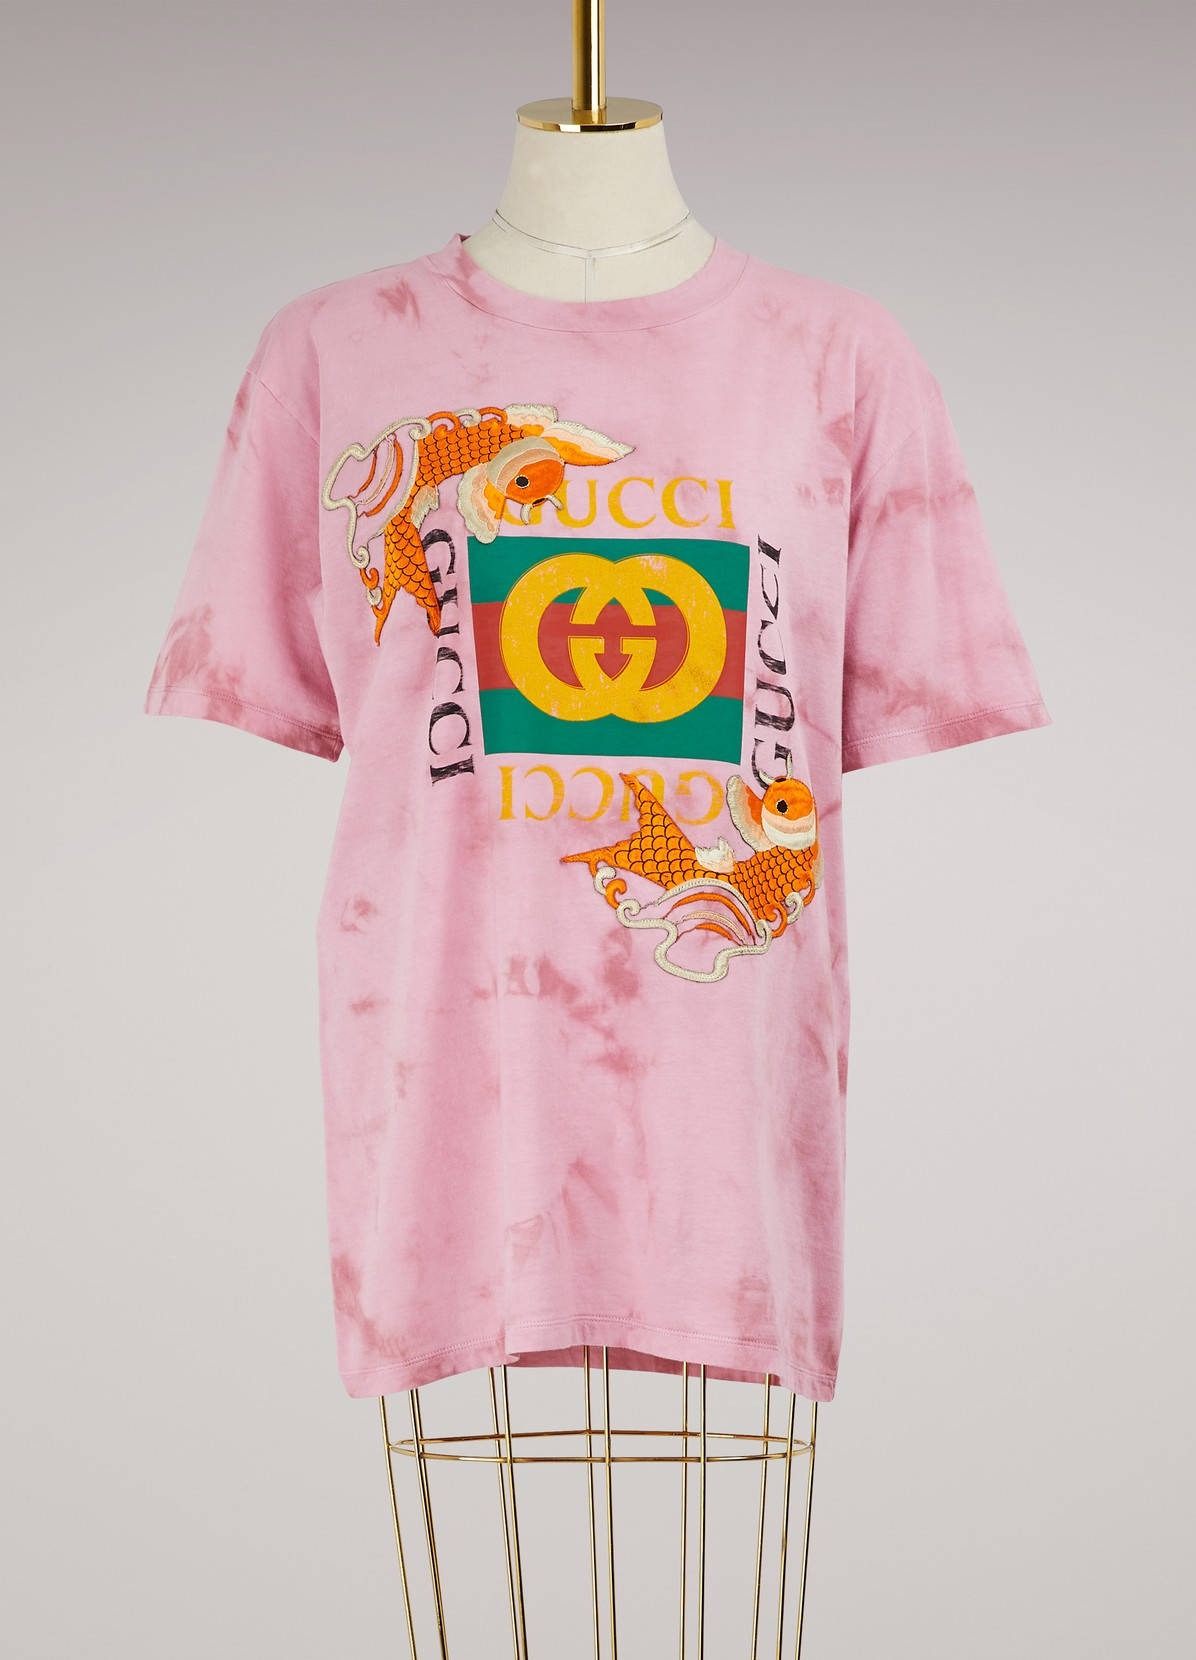 Fish Embroidered Cotton T-Shirt | GUCCI | 24 Sèvres